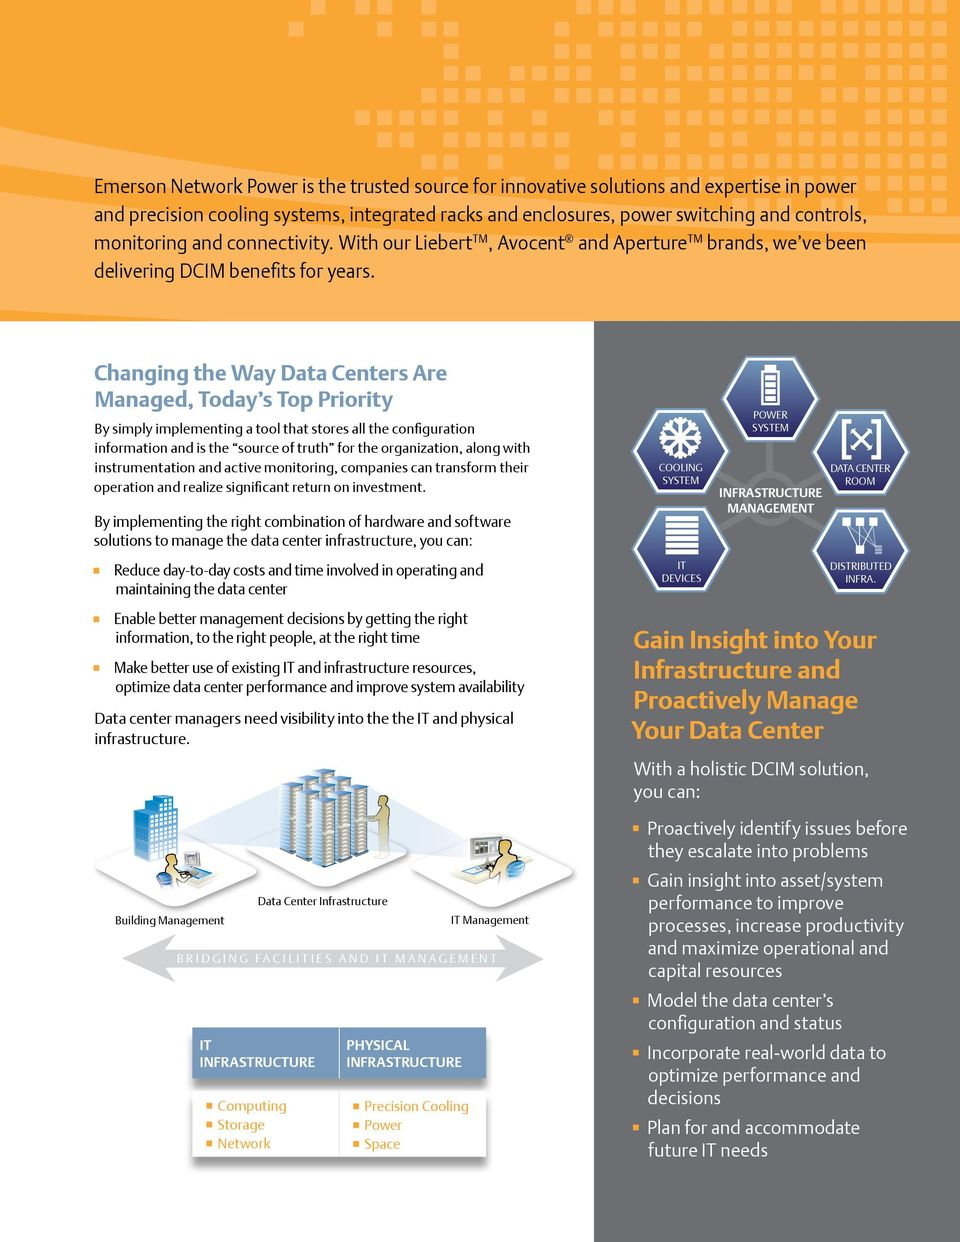 Changing the Way Data Centers Are Managed, Today s Top Priority By simply implementing a tool that stores all the configuration information and is the source of truth for the organization, along with